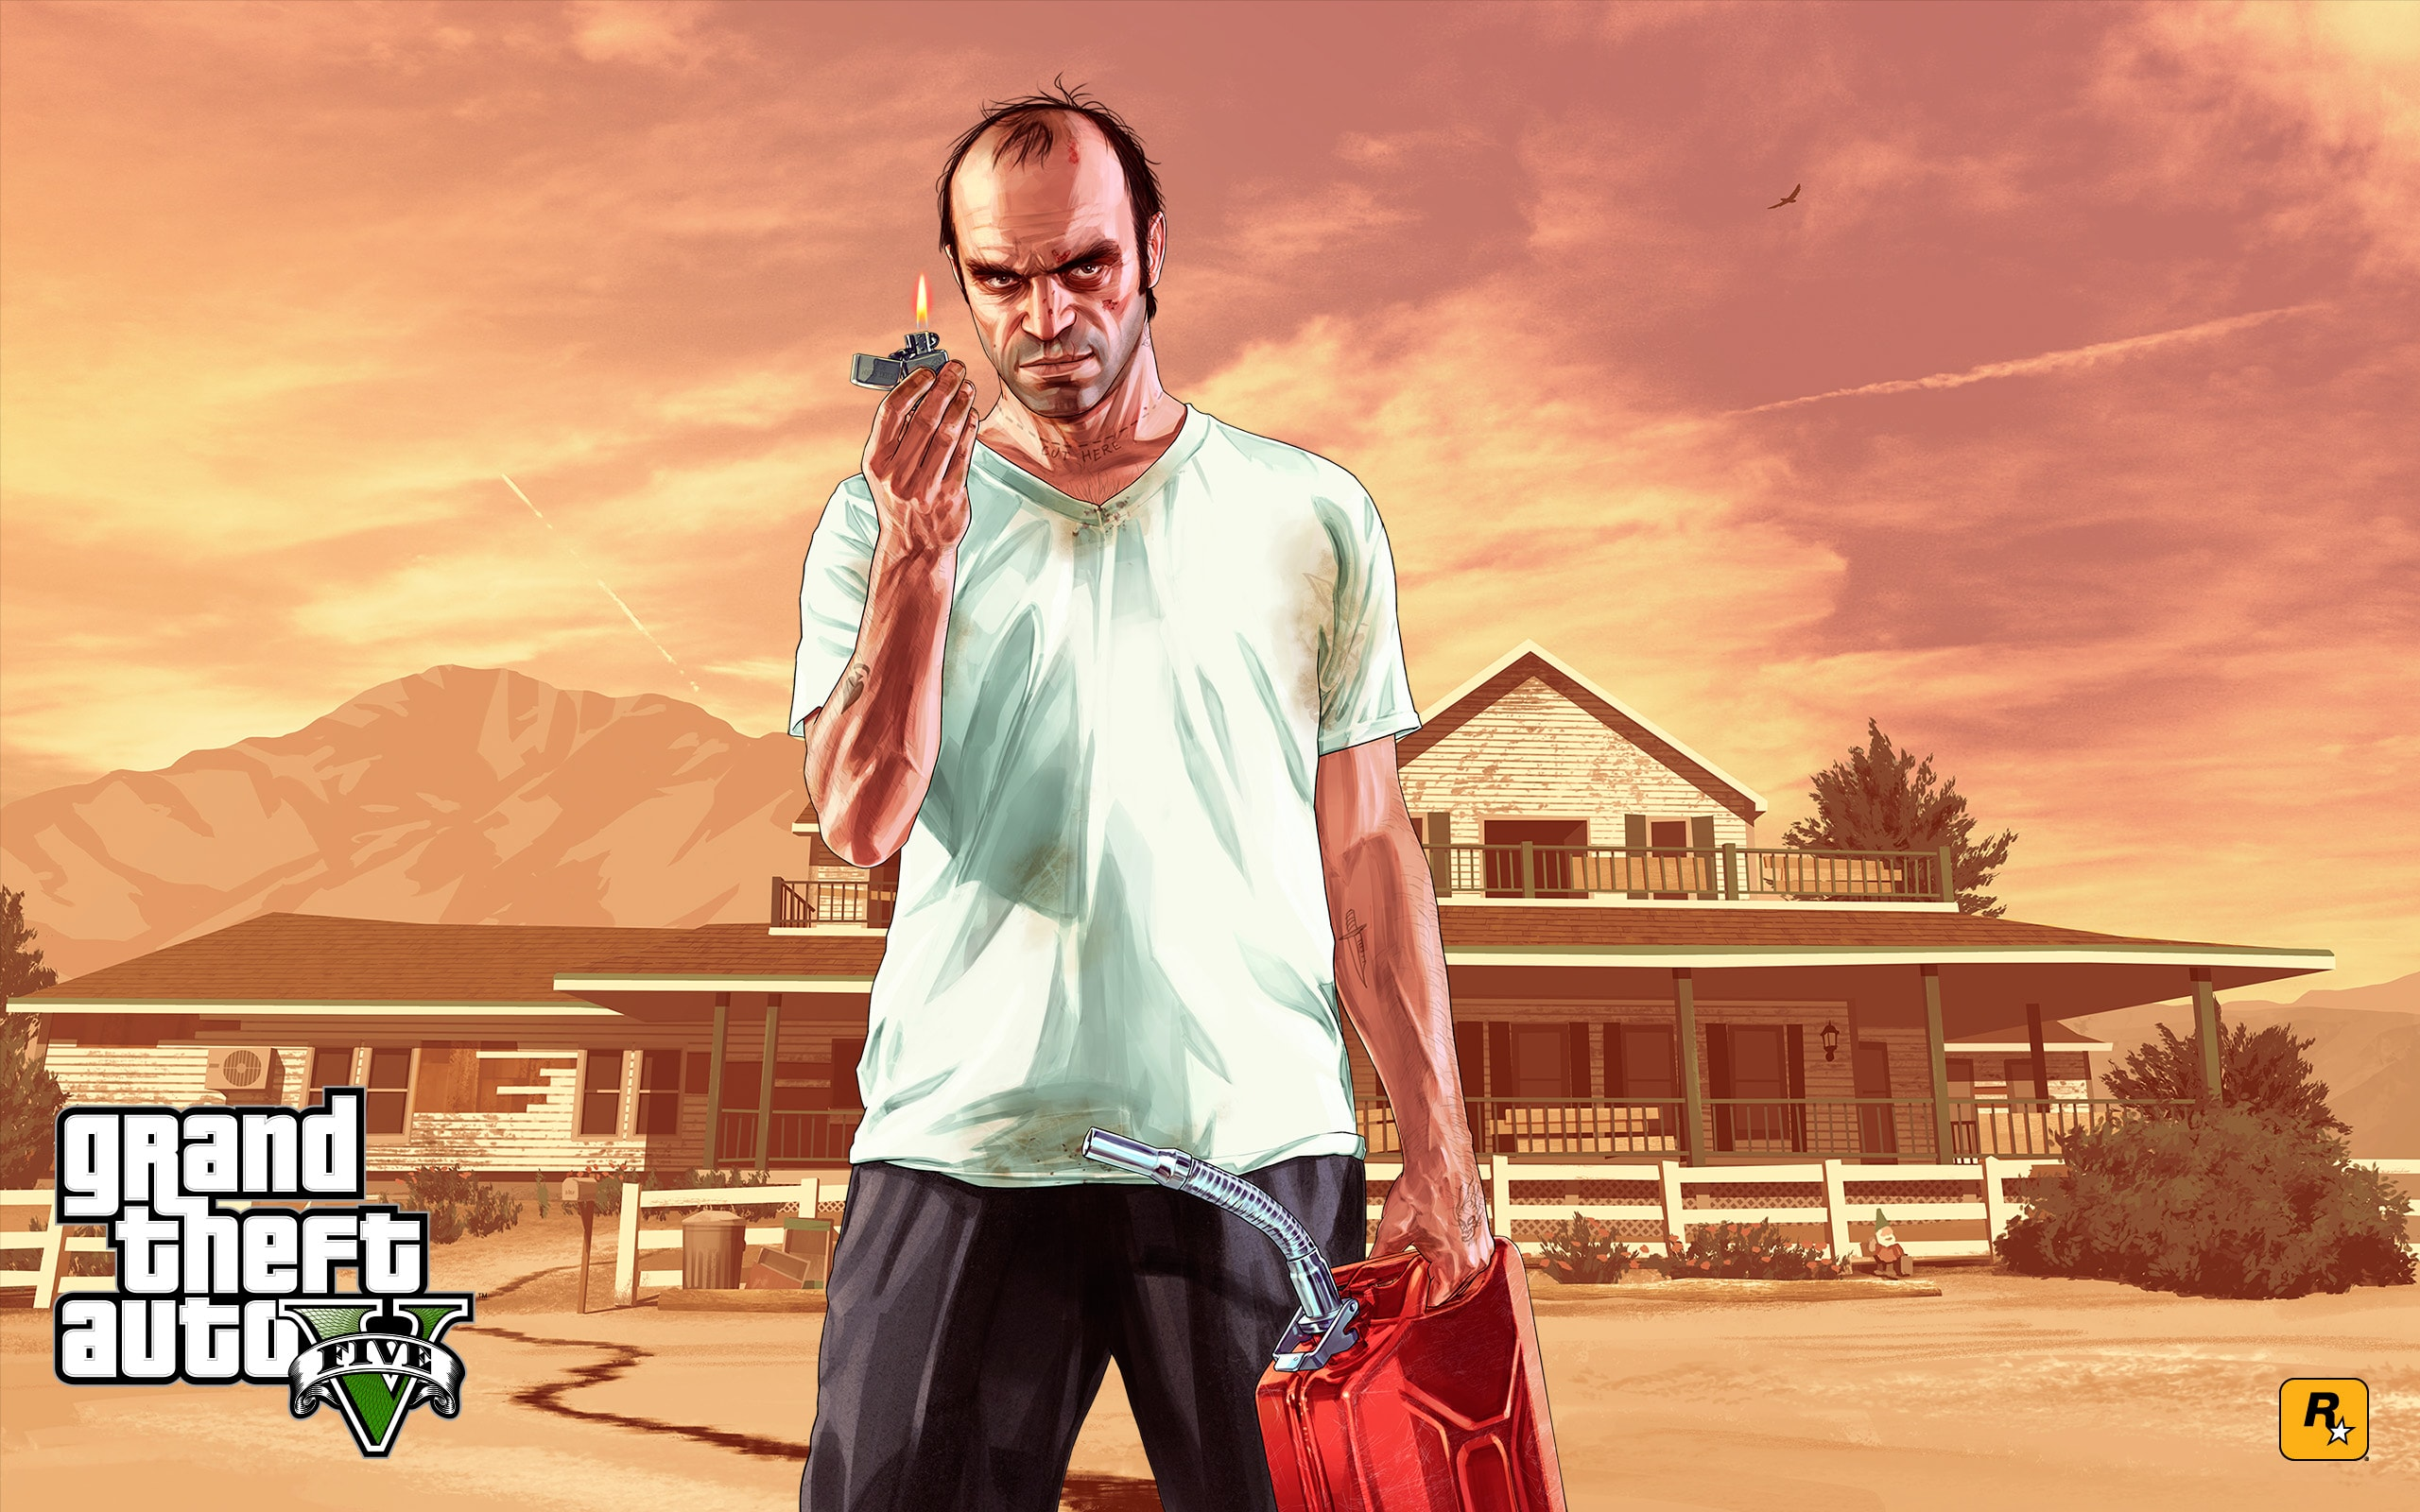 GTA 5 HD pictures